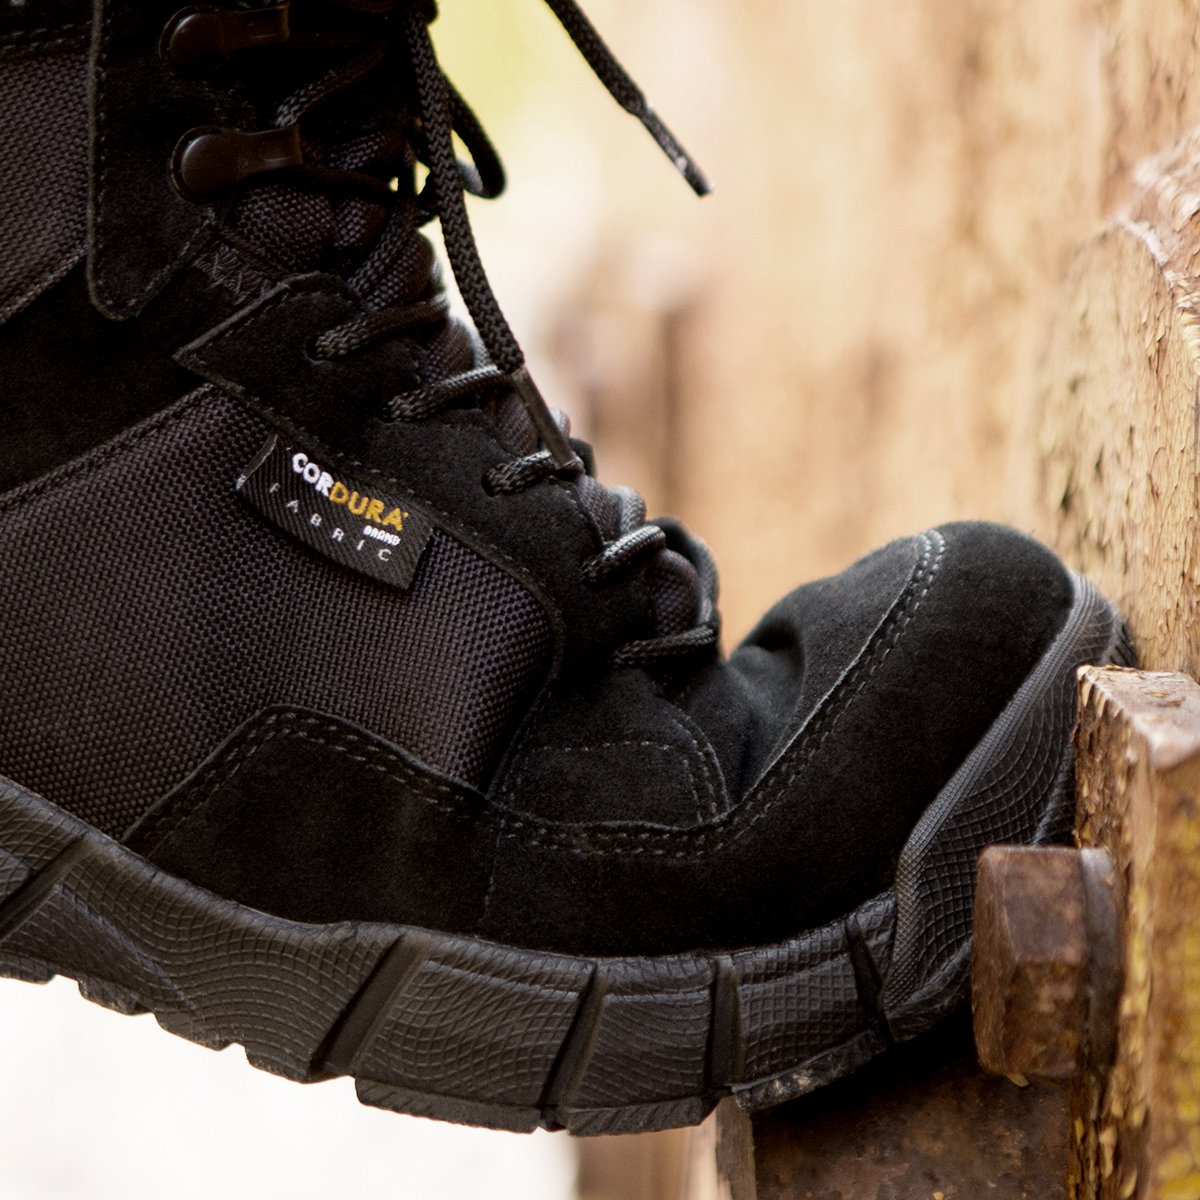 FREE SOLDIER Men's Tactical Boots 6'' inch Lightweight Military Boots for Hiking Work Boots Breathable Desert Boots (Black, 12.5) by FREE SOLDIER (Image #4)